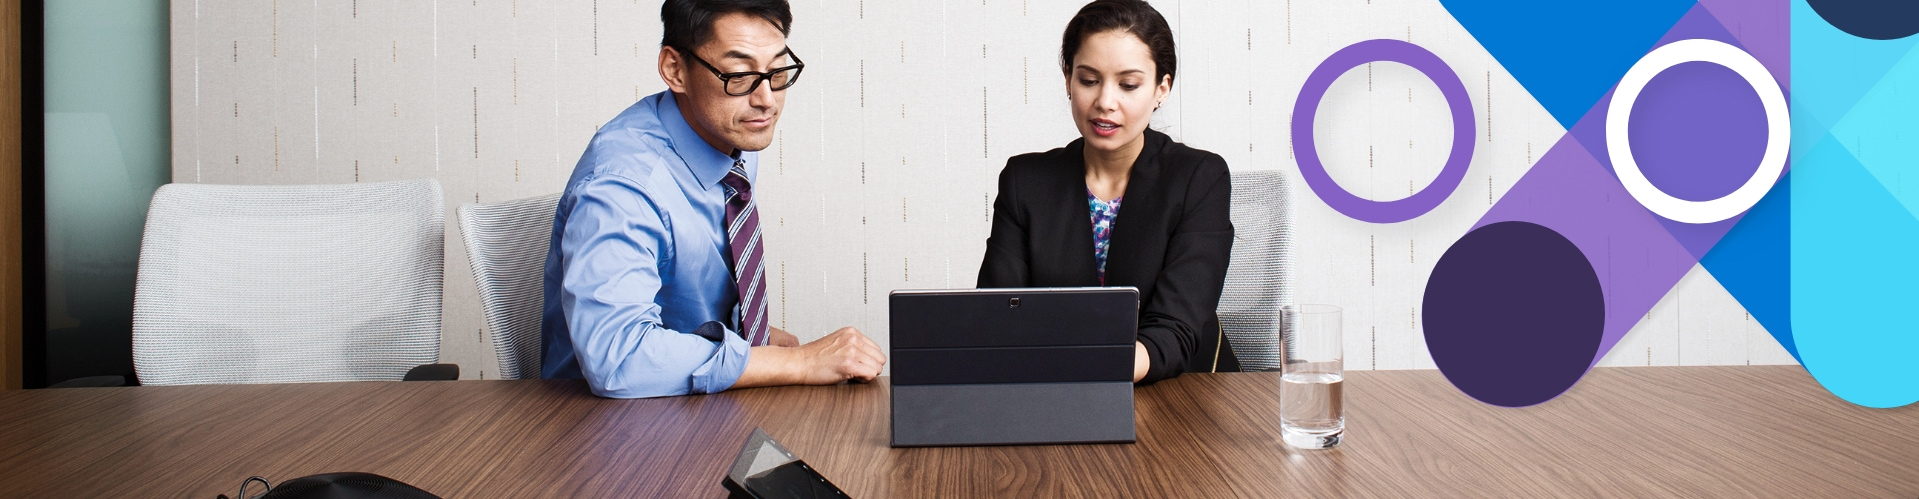 Two professionals sitting at a table looking at a laptop.